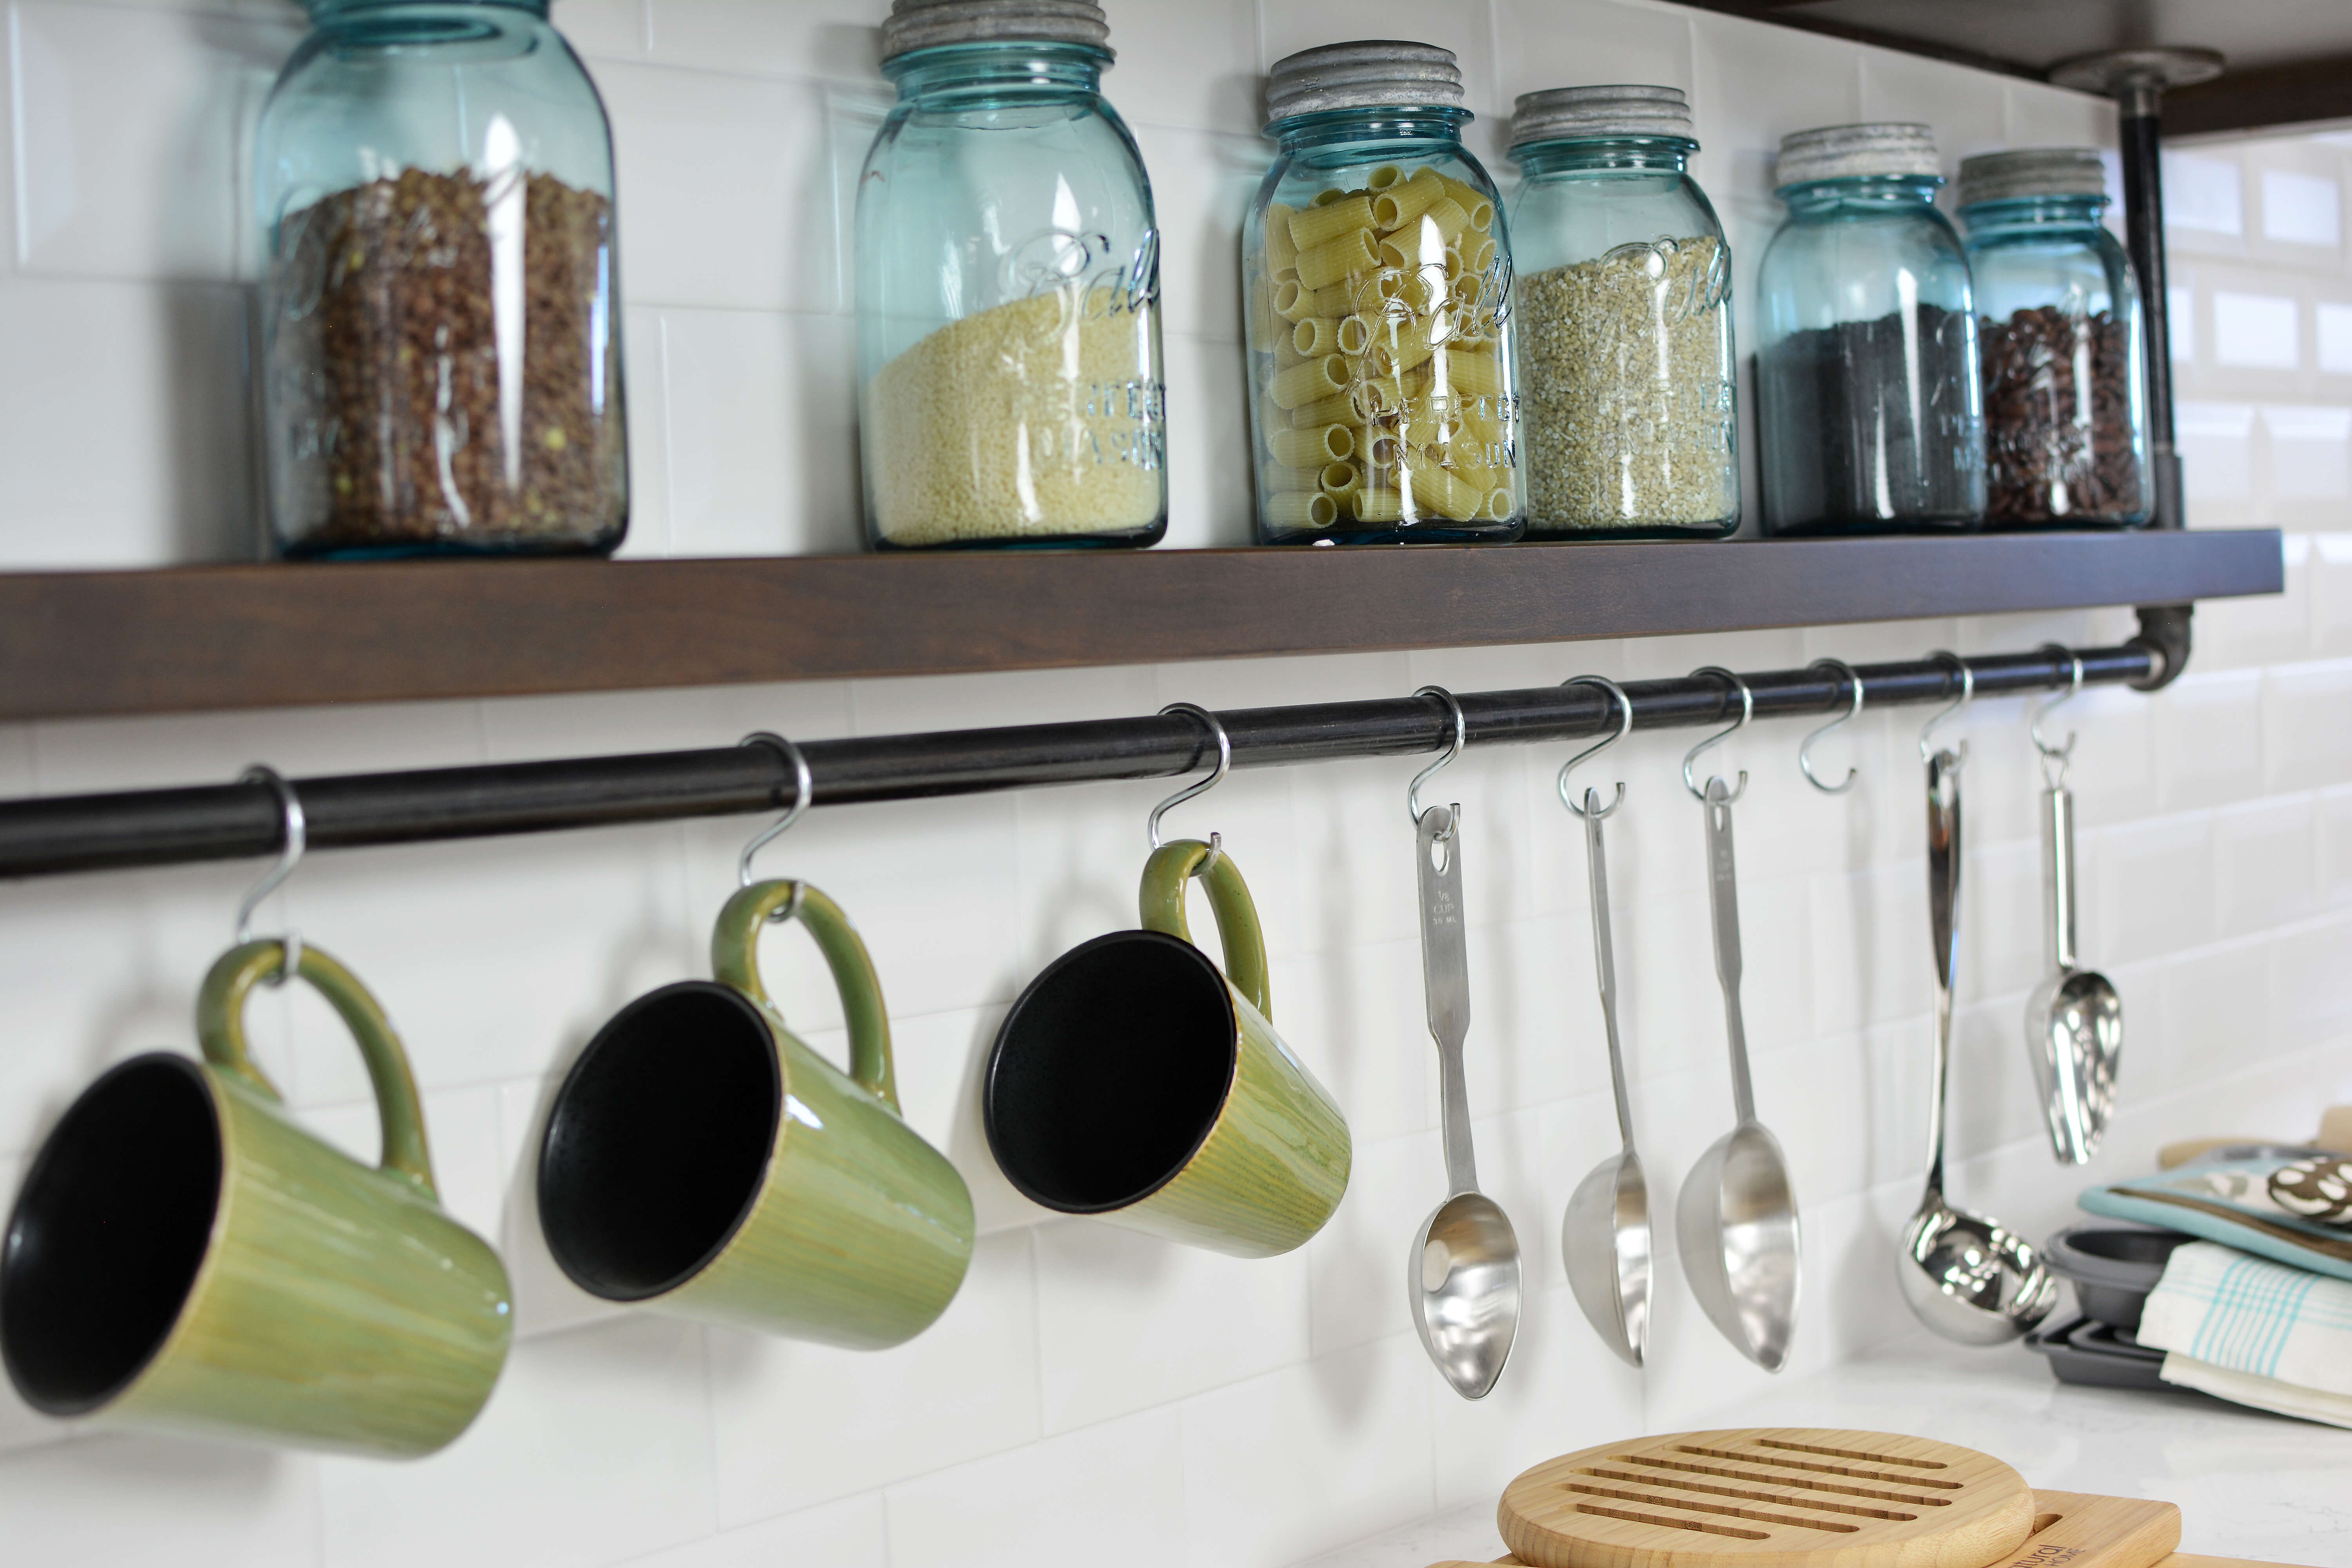 • In this kitchen, an industrial style shelf hangs from the wall cabinets with hanging coffee cup storage. This feature is placed strategically within a close distance to the coffee station.